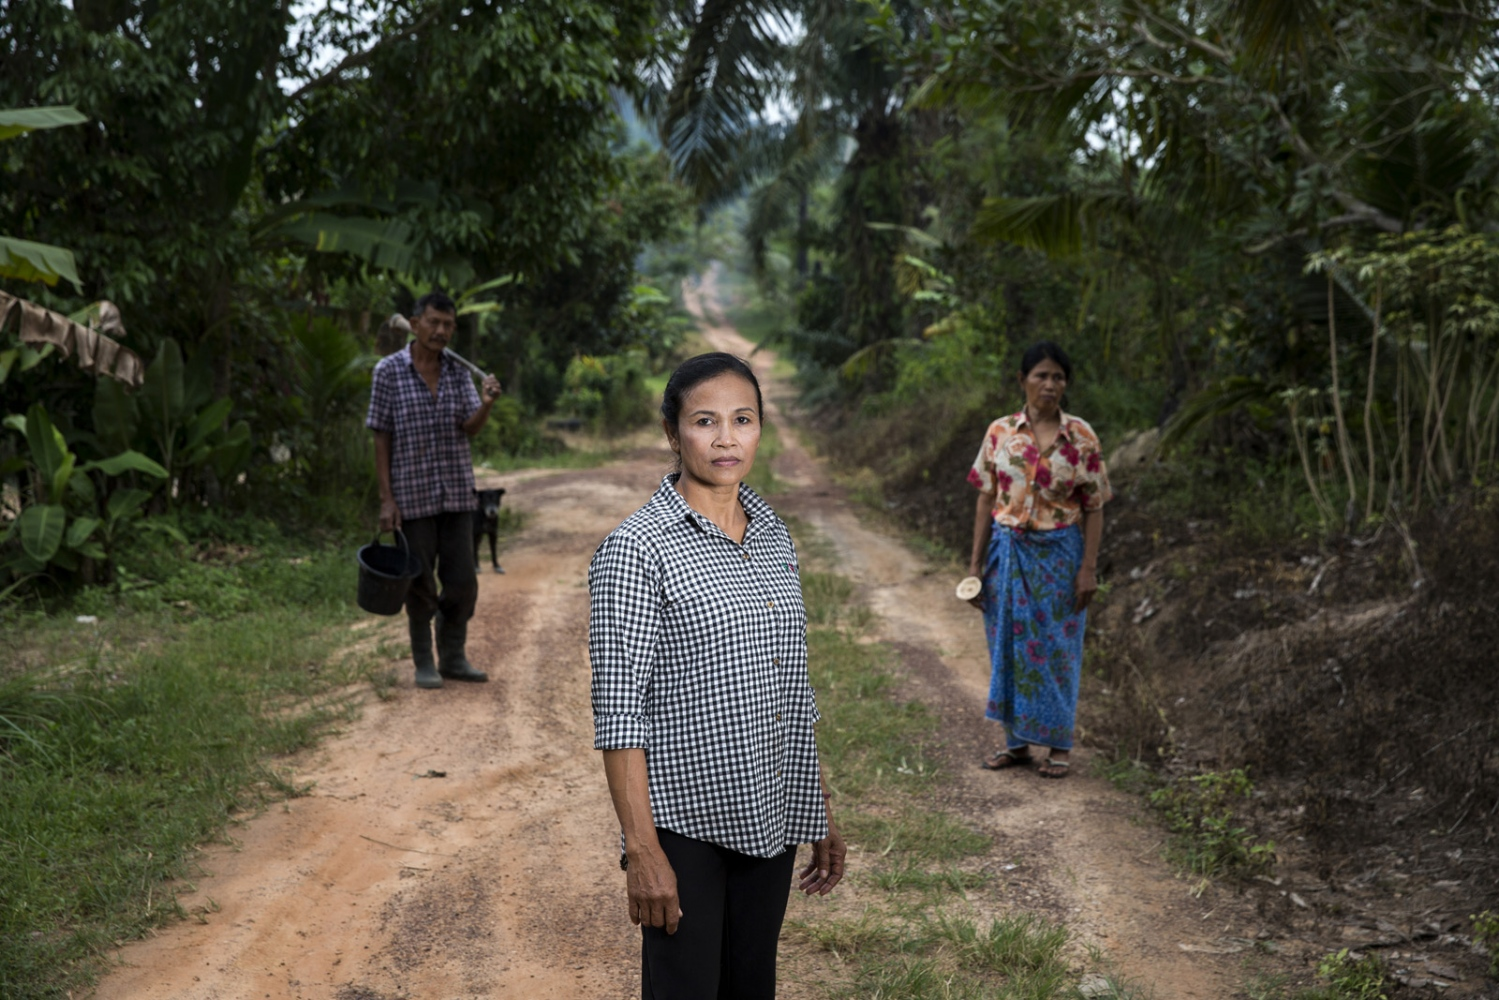 Asane Rodphol stands on the track that runs through her community of Nam Daeng in Surat Thani Province. Behind her stands other members of the community which is supported by the Southern Peasants Federation of Thailand as it faces legal threats and eviction.  Surat Thani, Thailand